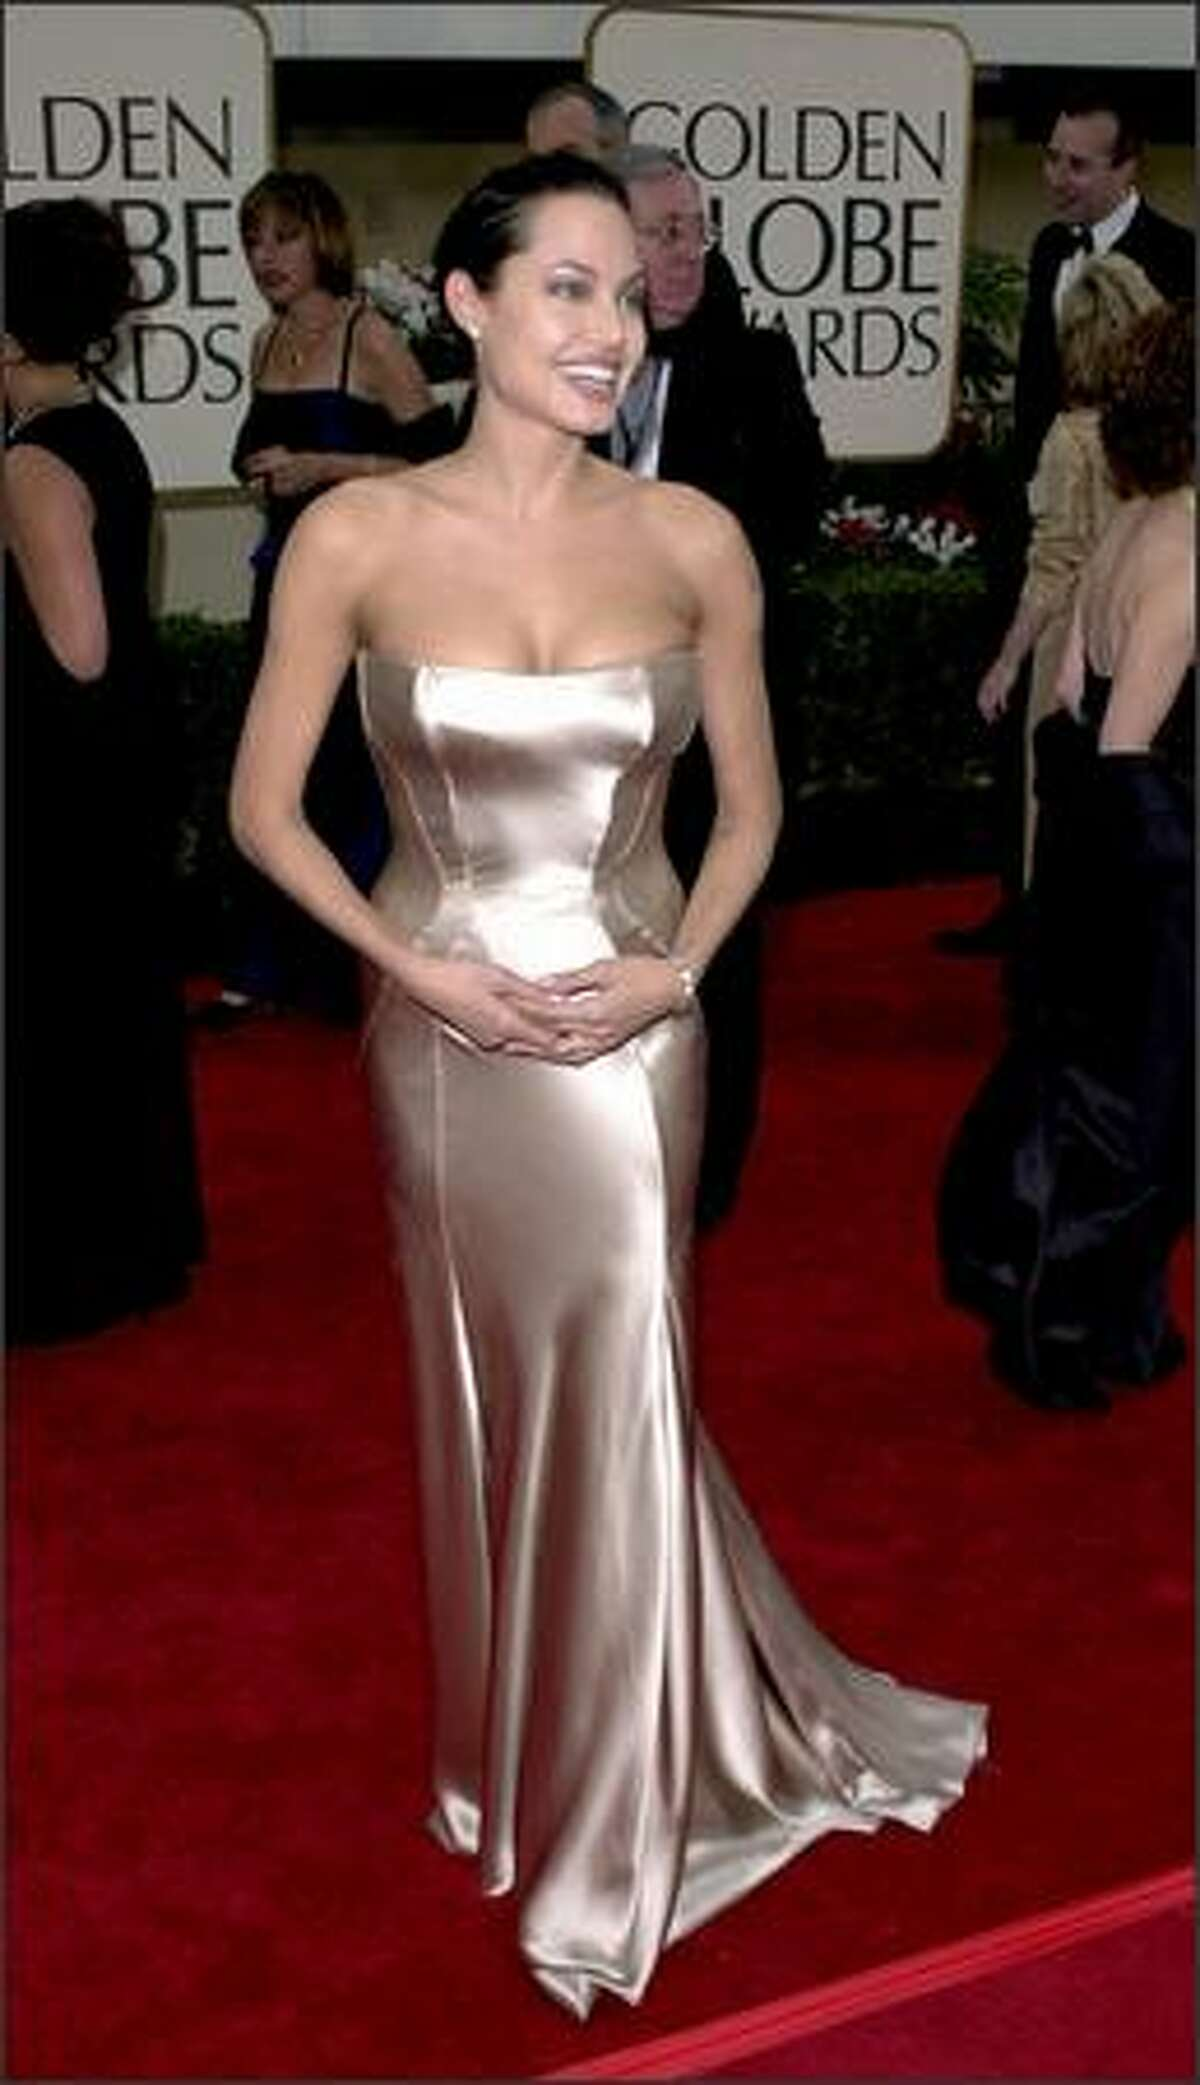 Angelina Jolie arrives at the 58th annual Golden Globes at the Beverly Hilton Hotel in Beverly Hills, Calif., Jan. 21, 2001.